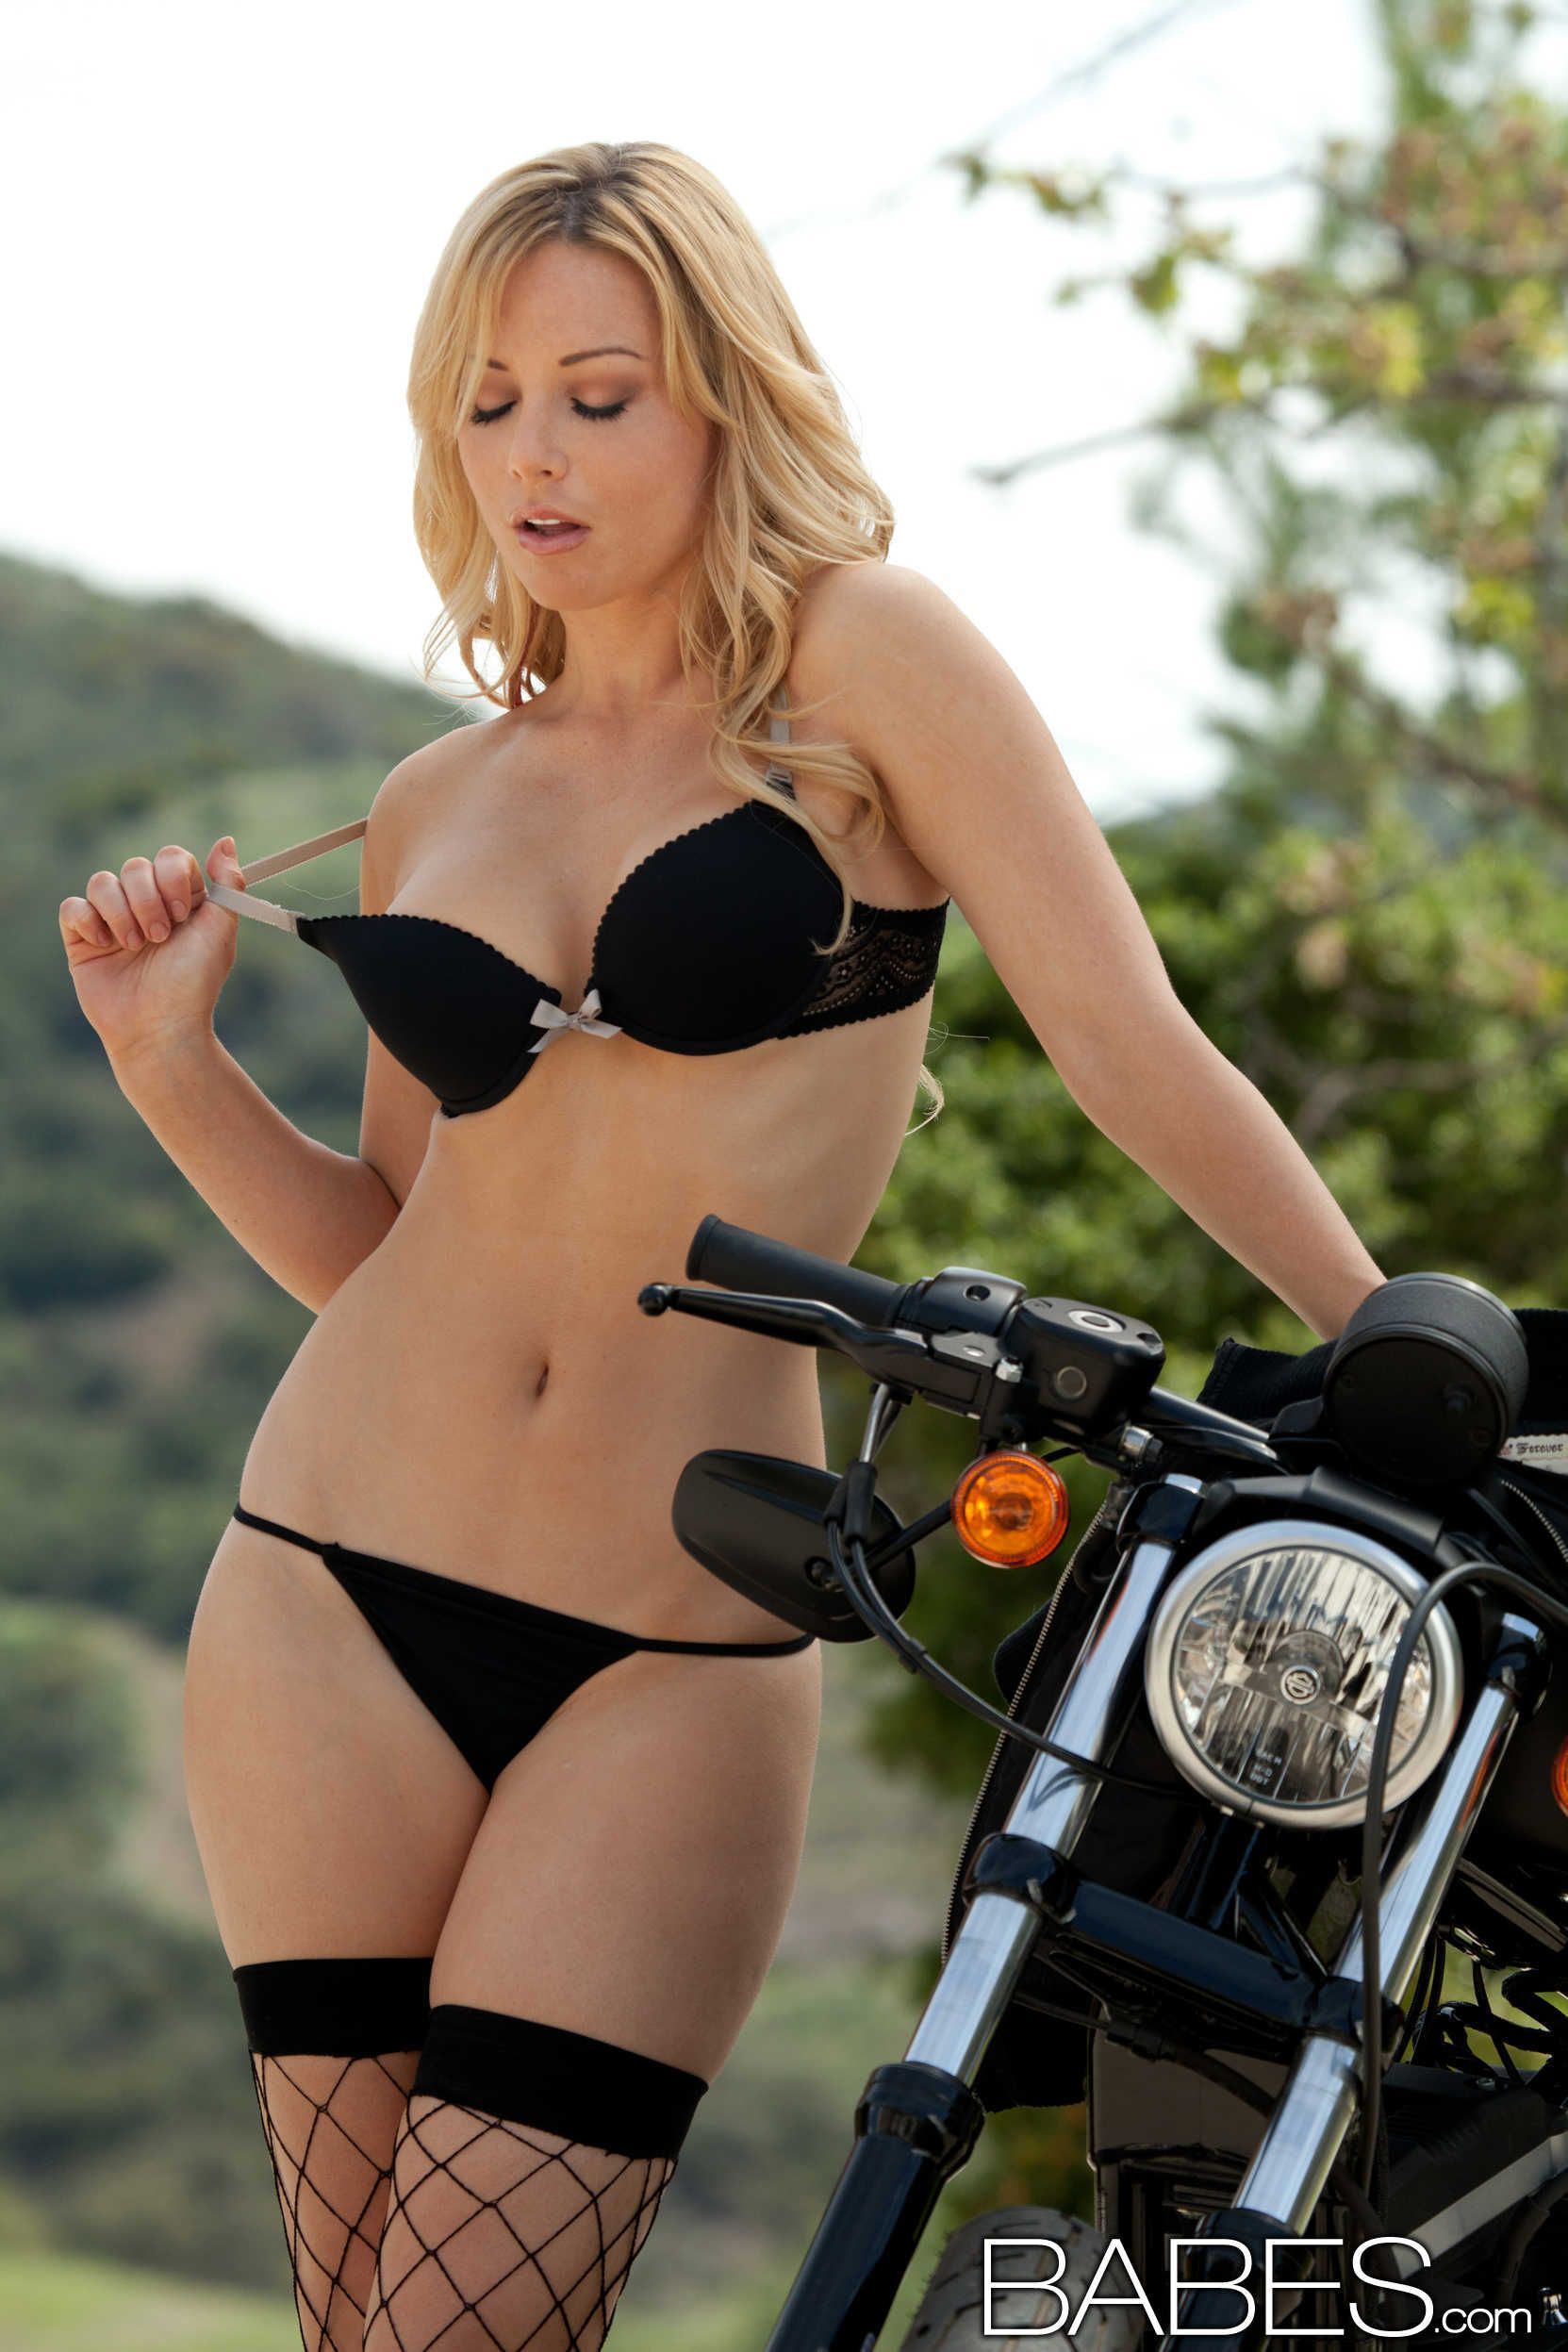 1000 images about kayden kross on Pinterest